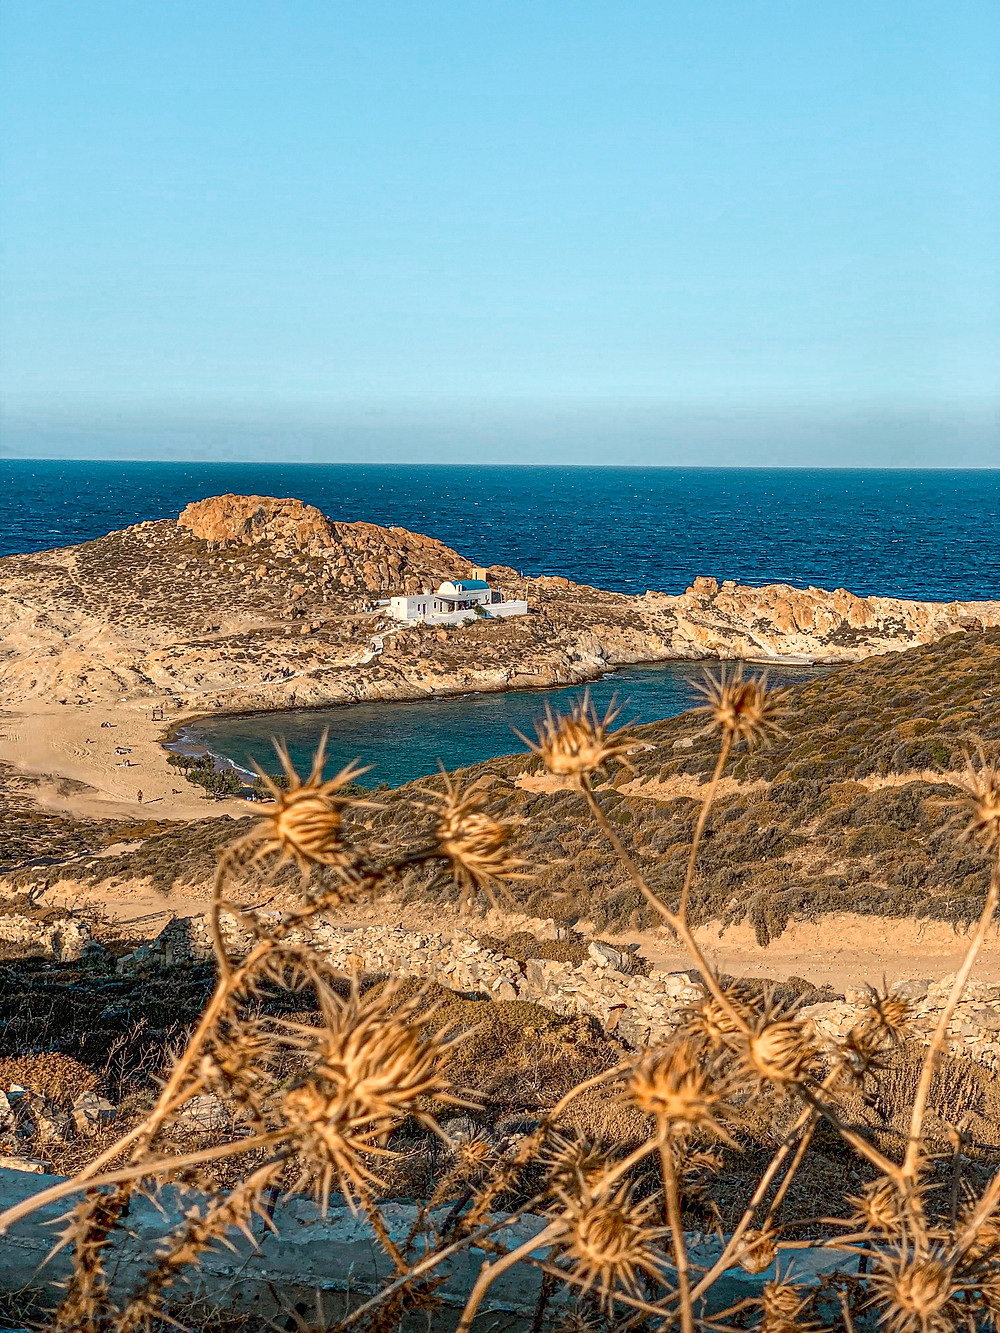 serifos beach, where to stay in serifos, what to do in serifos, serifos airport, how to get to serifos, greek island, serifos or sifnos, serifos accommodation, serifos greece, best restaurants serifos, best beach serifos, serifos tourism, serifos greece, serifos info, serifos travel guide